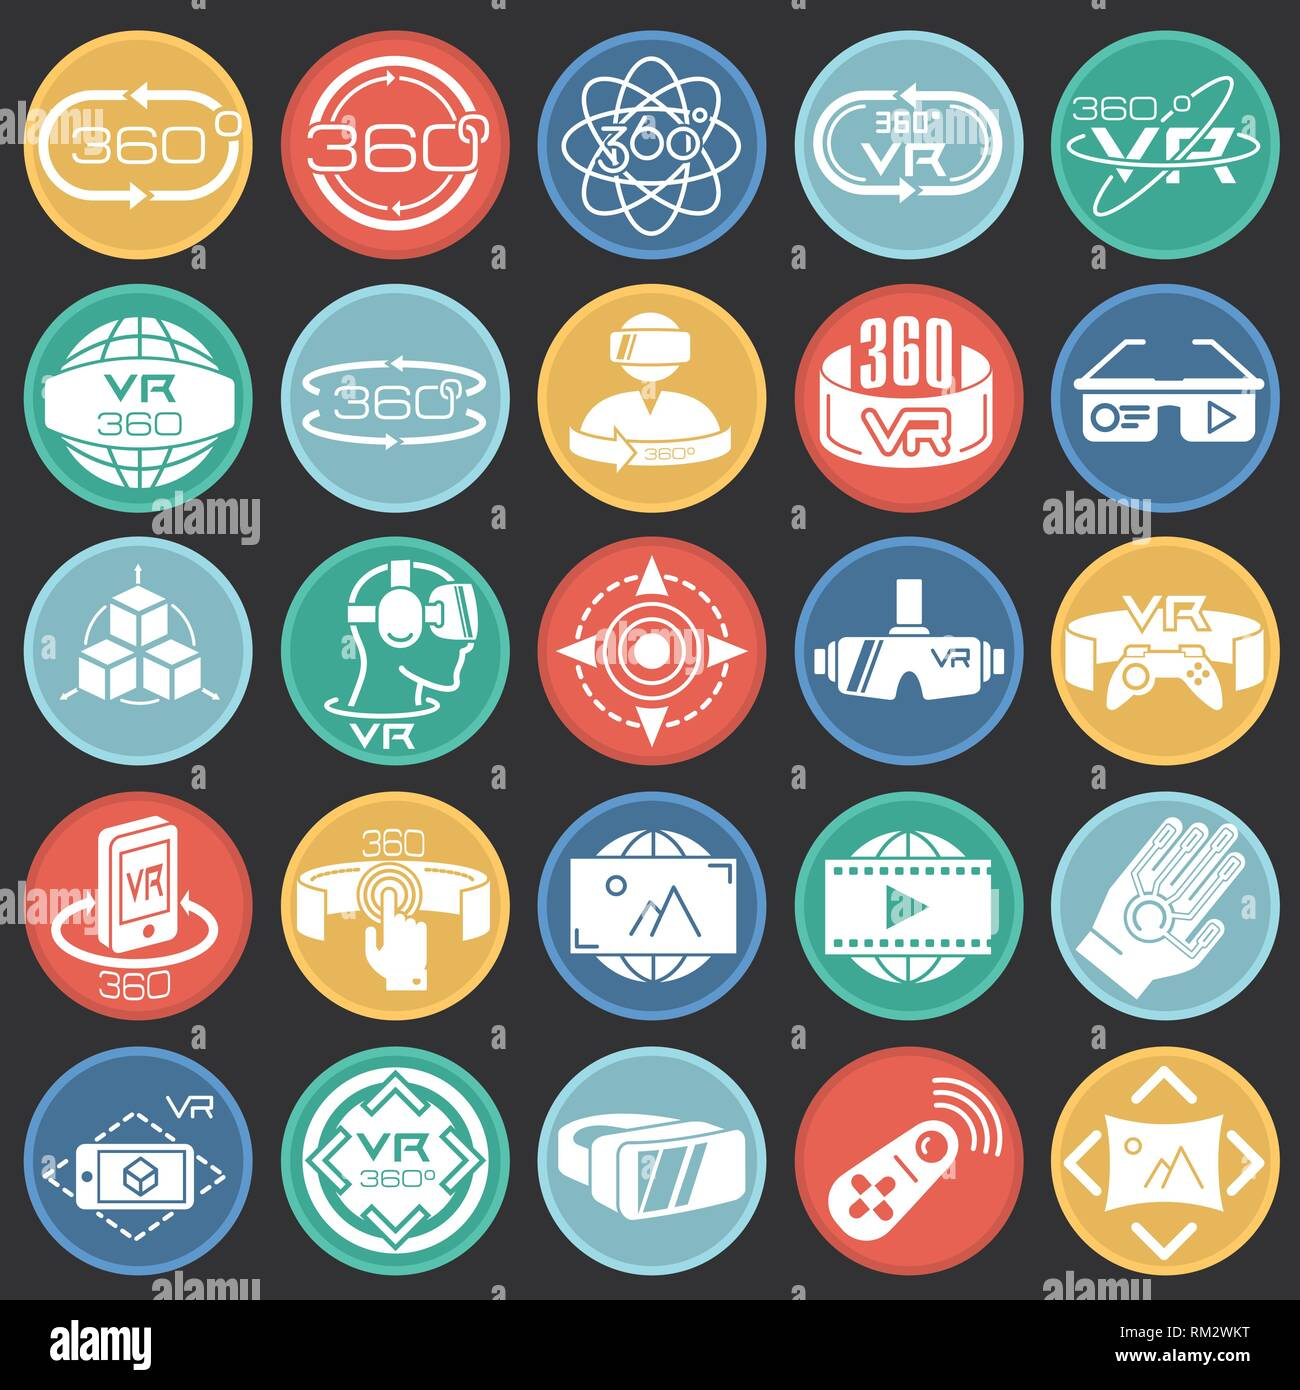 06f8abd261a Virtual reality icons set on color circles black background for graphic and  web design